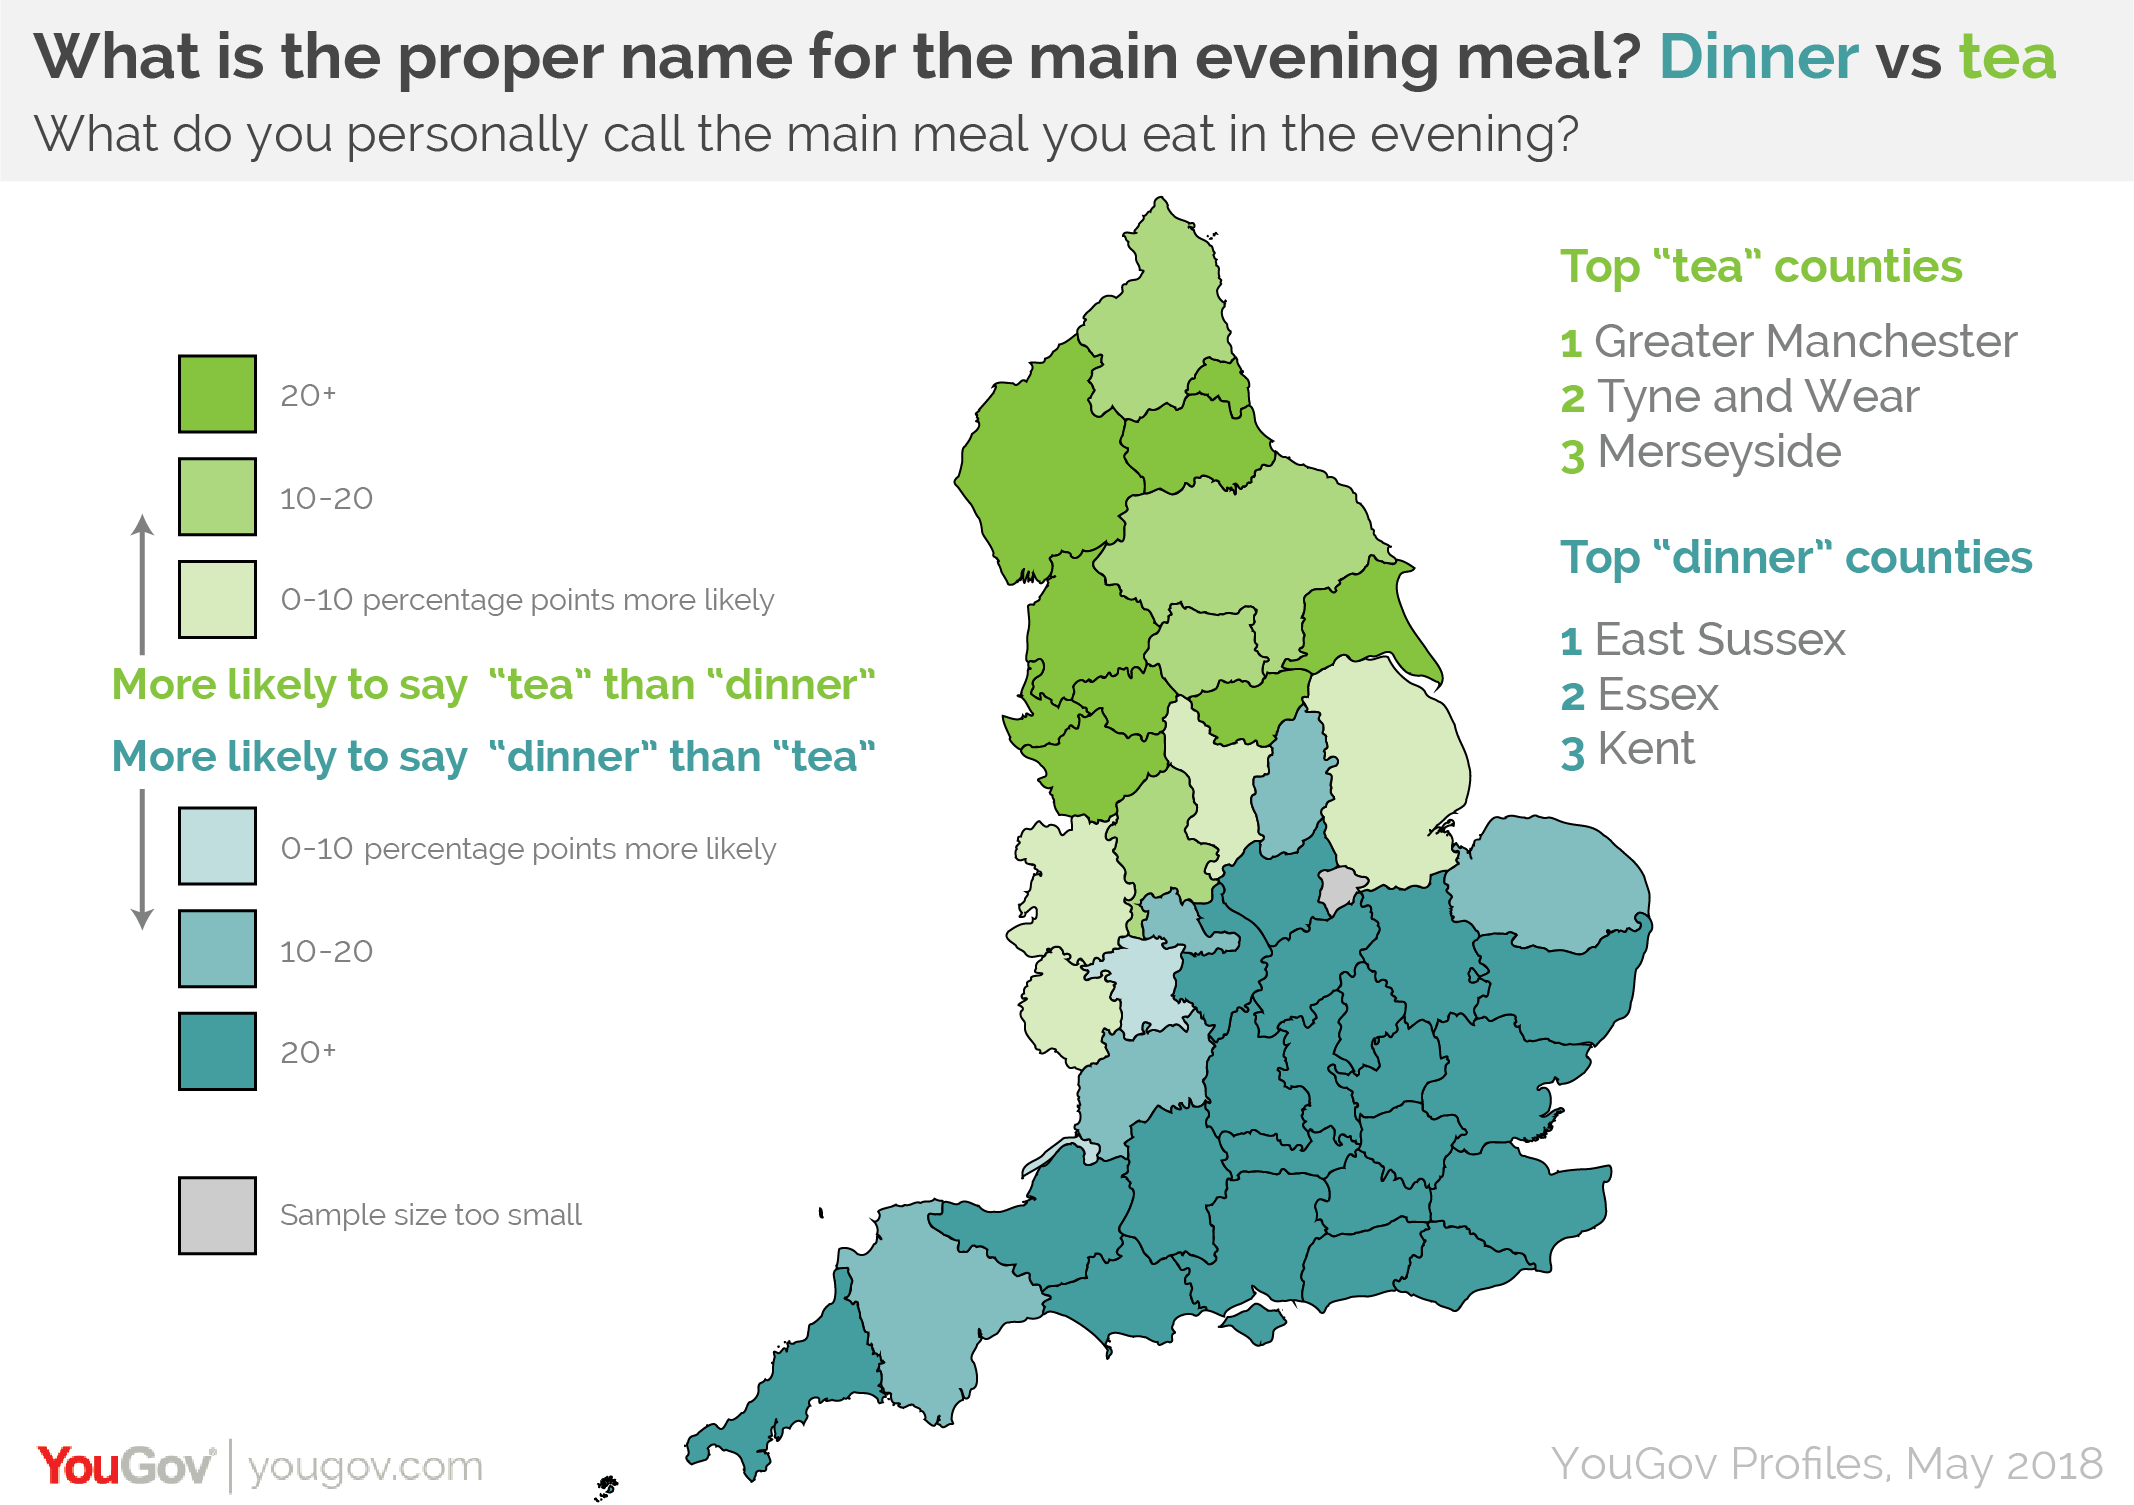 Map Of England The Last Kingdom.Dinner Supper Or Tea This Is How The Country Refers To Their